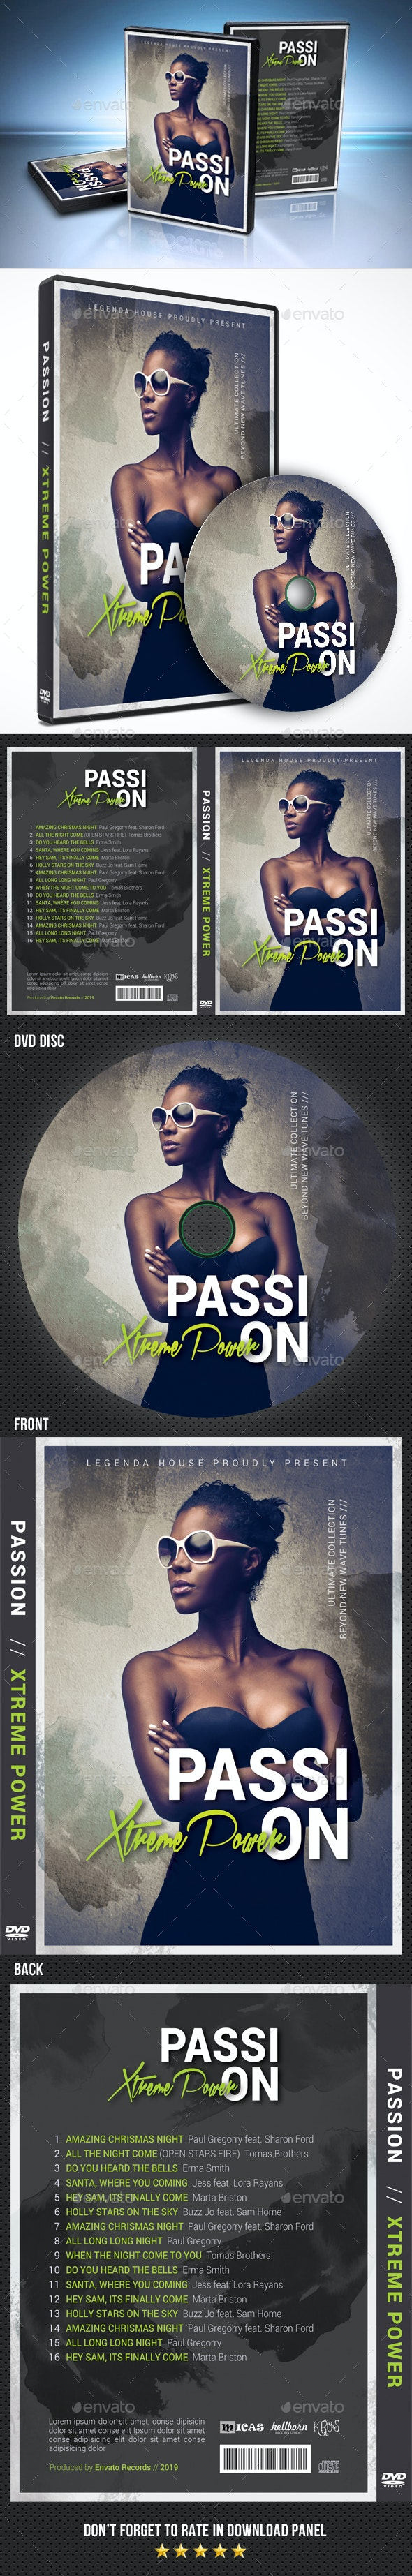 Passion Music DVD Cover Template - CD & DVD Artwork Print Templates